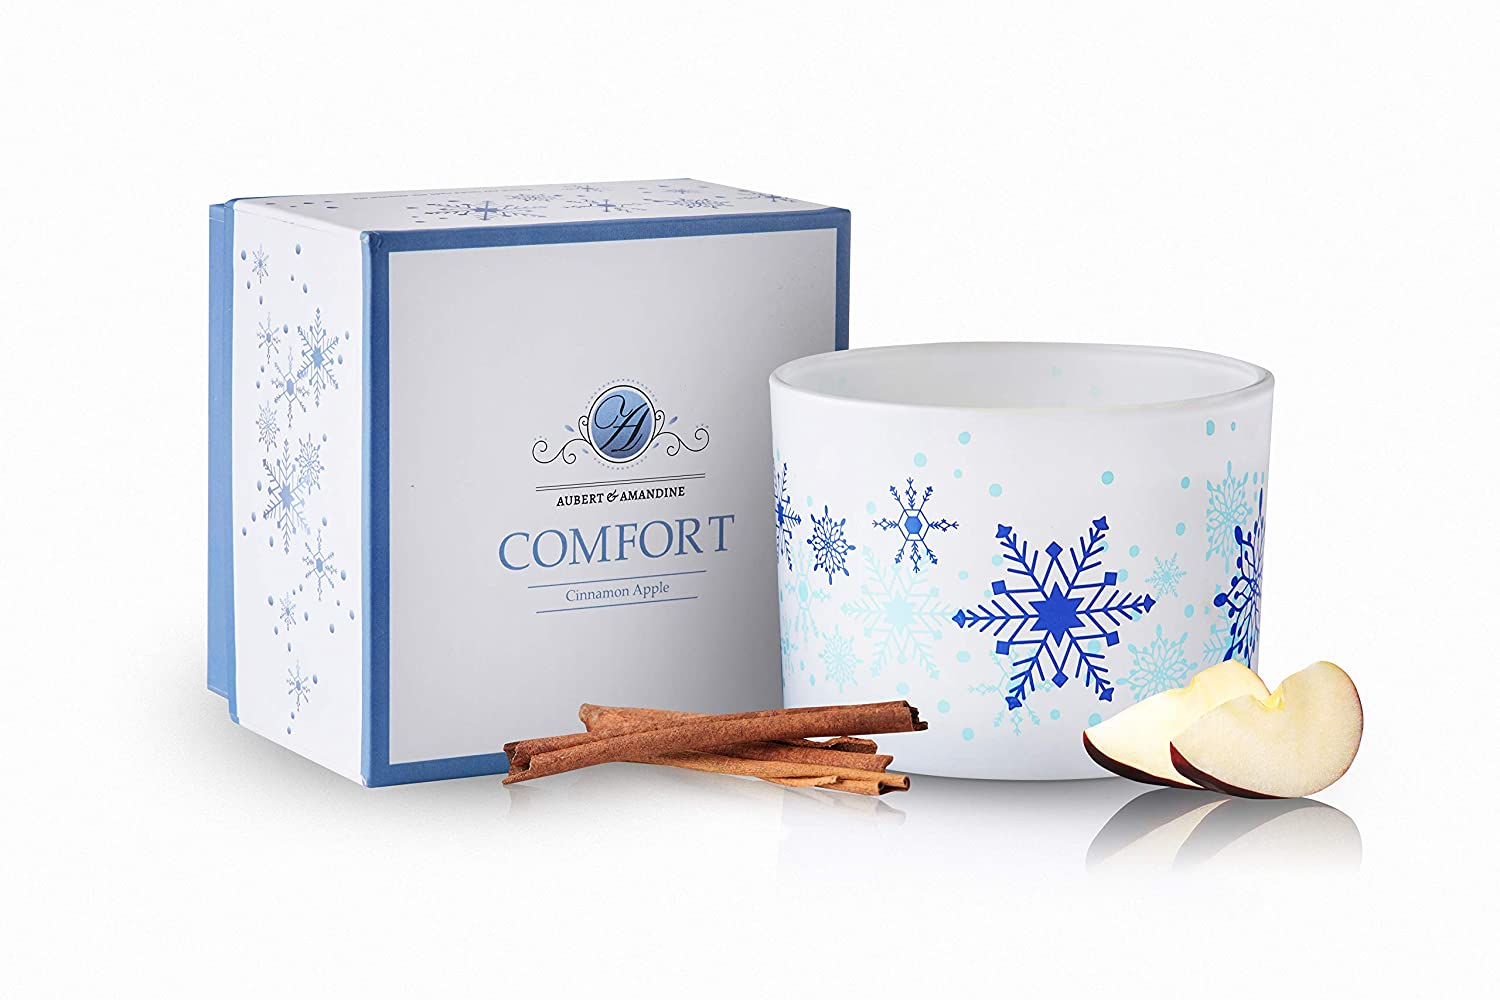 Aubert & Amandine Luxury Scented Soy 3 Wick Candle for Stress Relief & Relaxation High Intensity Aromatherapy (Comfort - Cinnamon Apple)